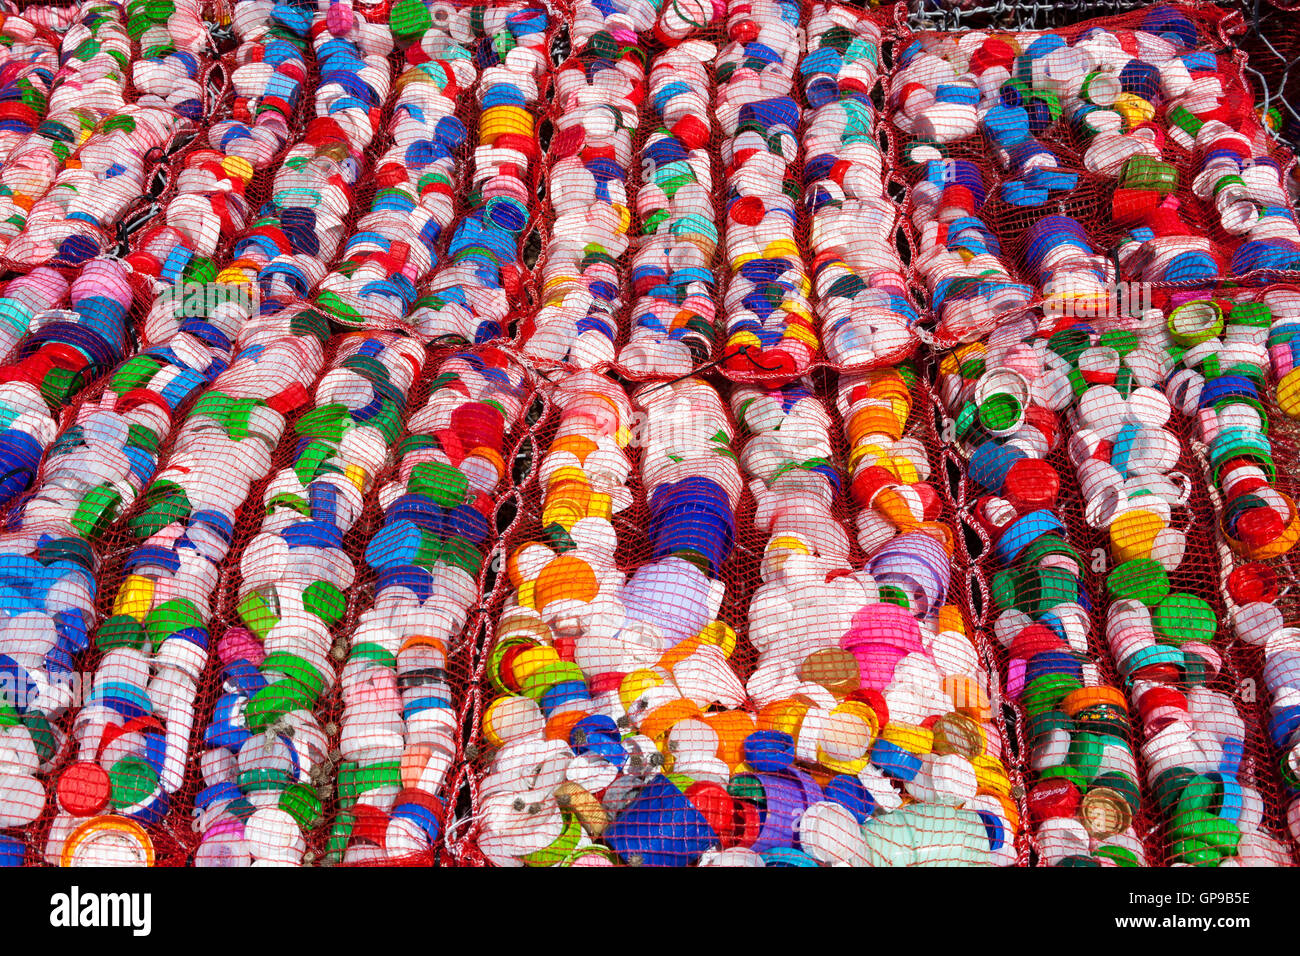 Recycled plastic bottle tops, Mozia, Sicily, Italy - Stock Image